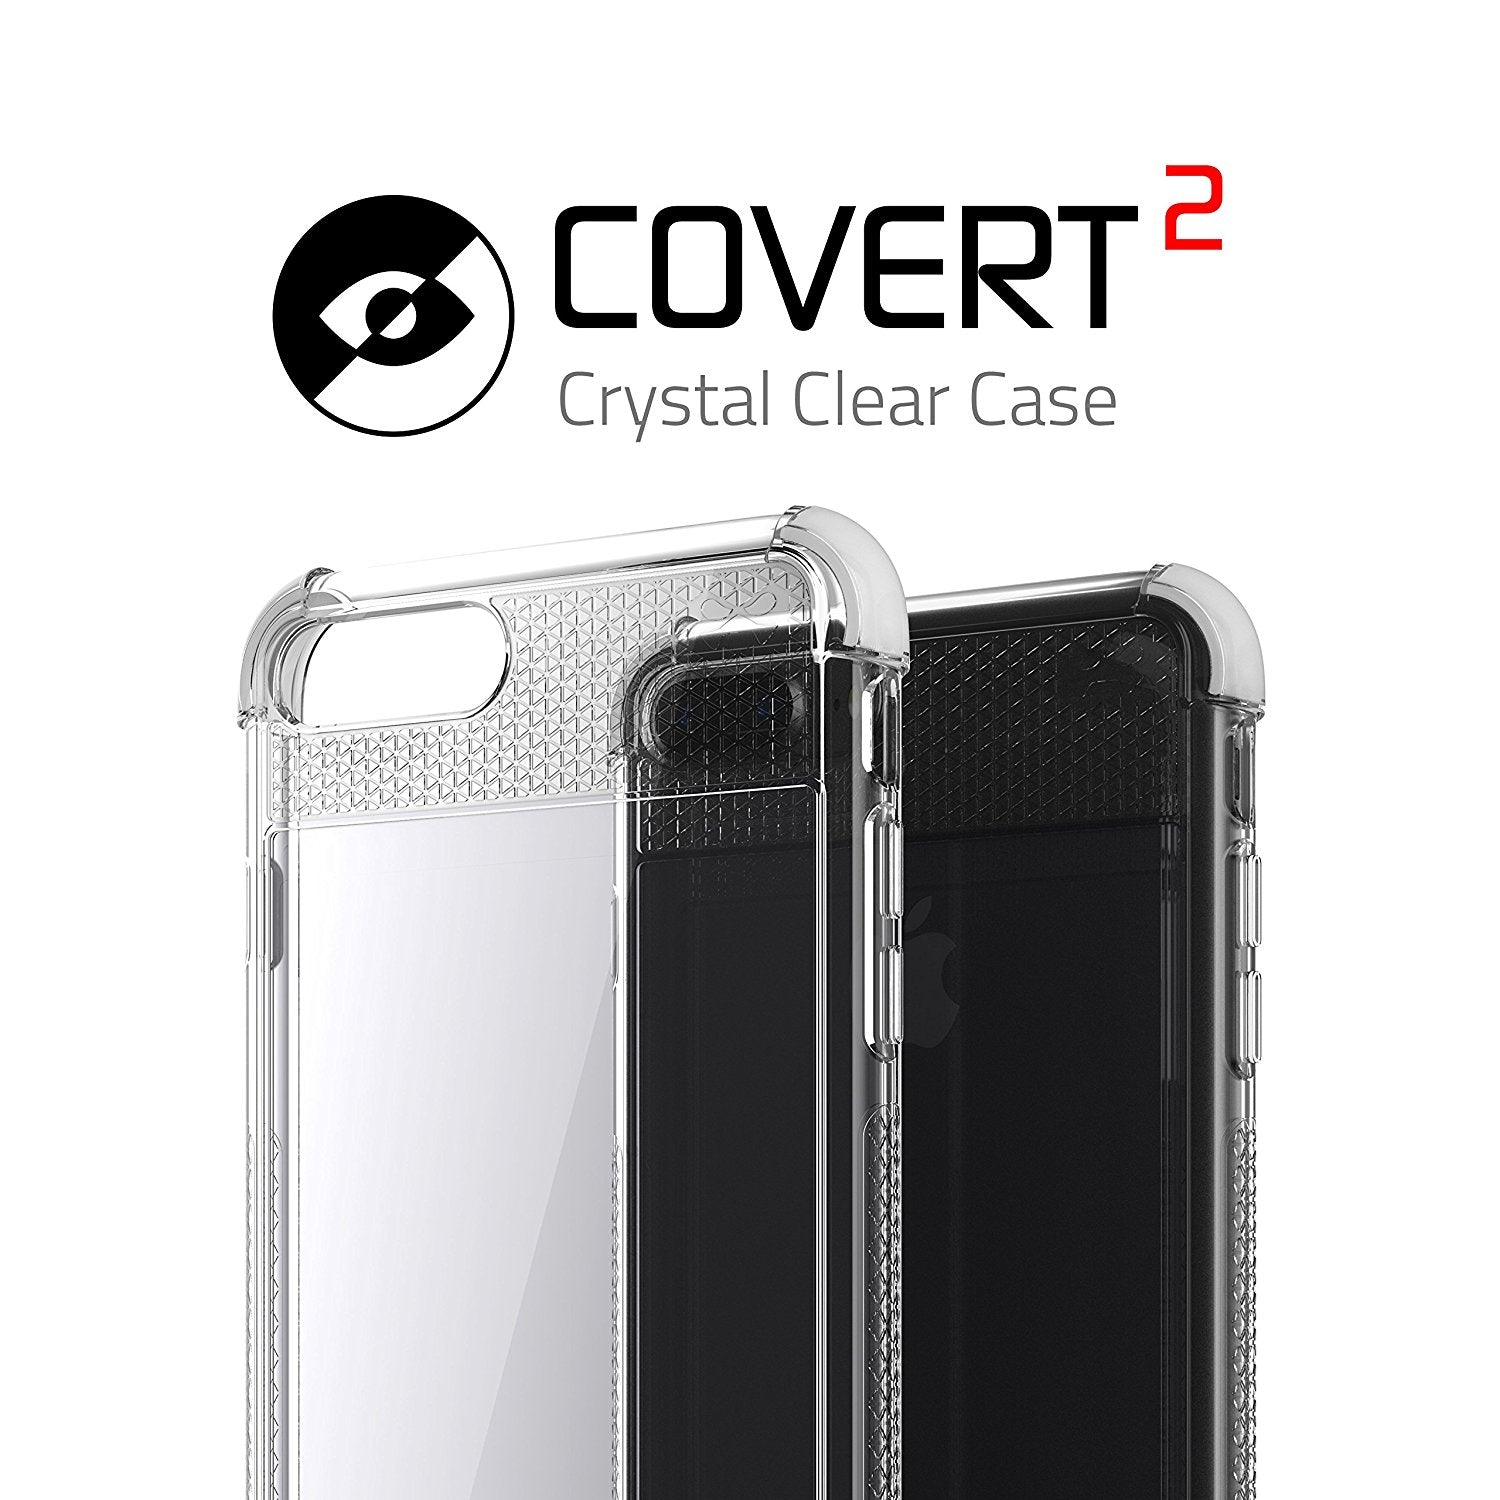 iPhone 7+ Plus Case, Ghostek Covert 2 Series for iPhone 7+ Plus Protective Case [ White]